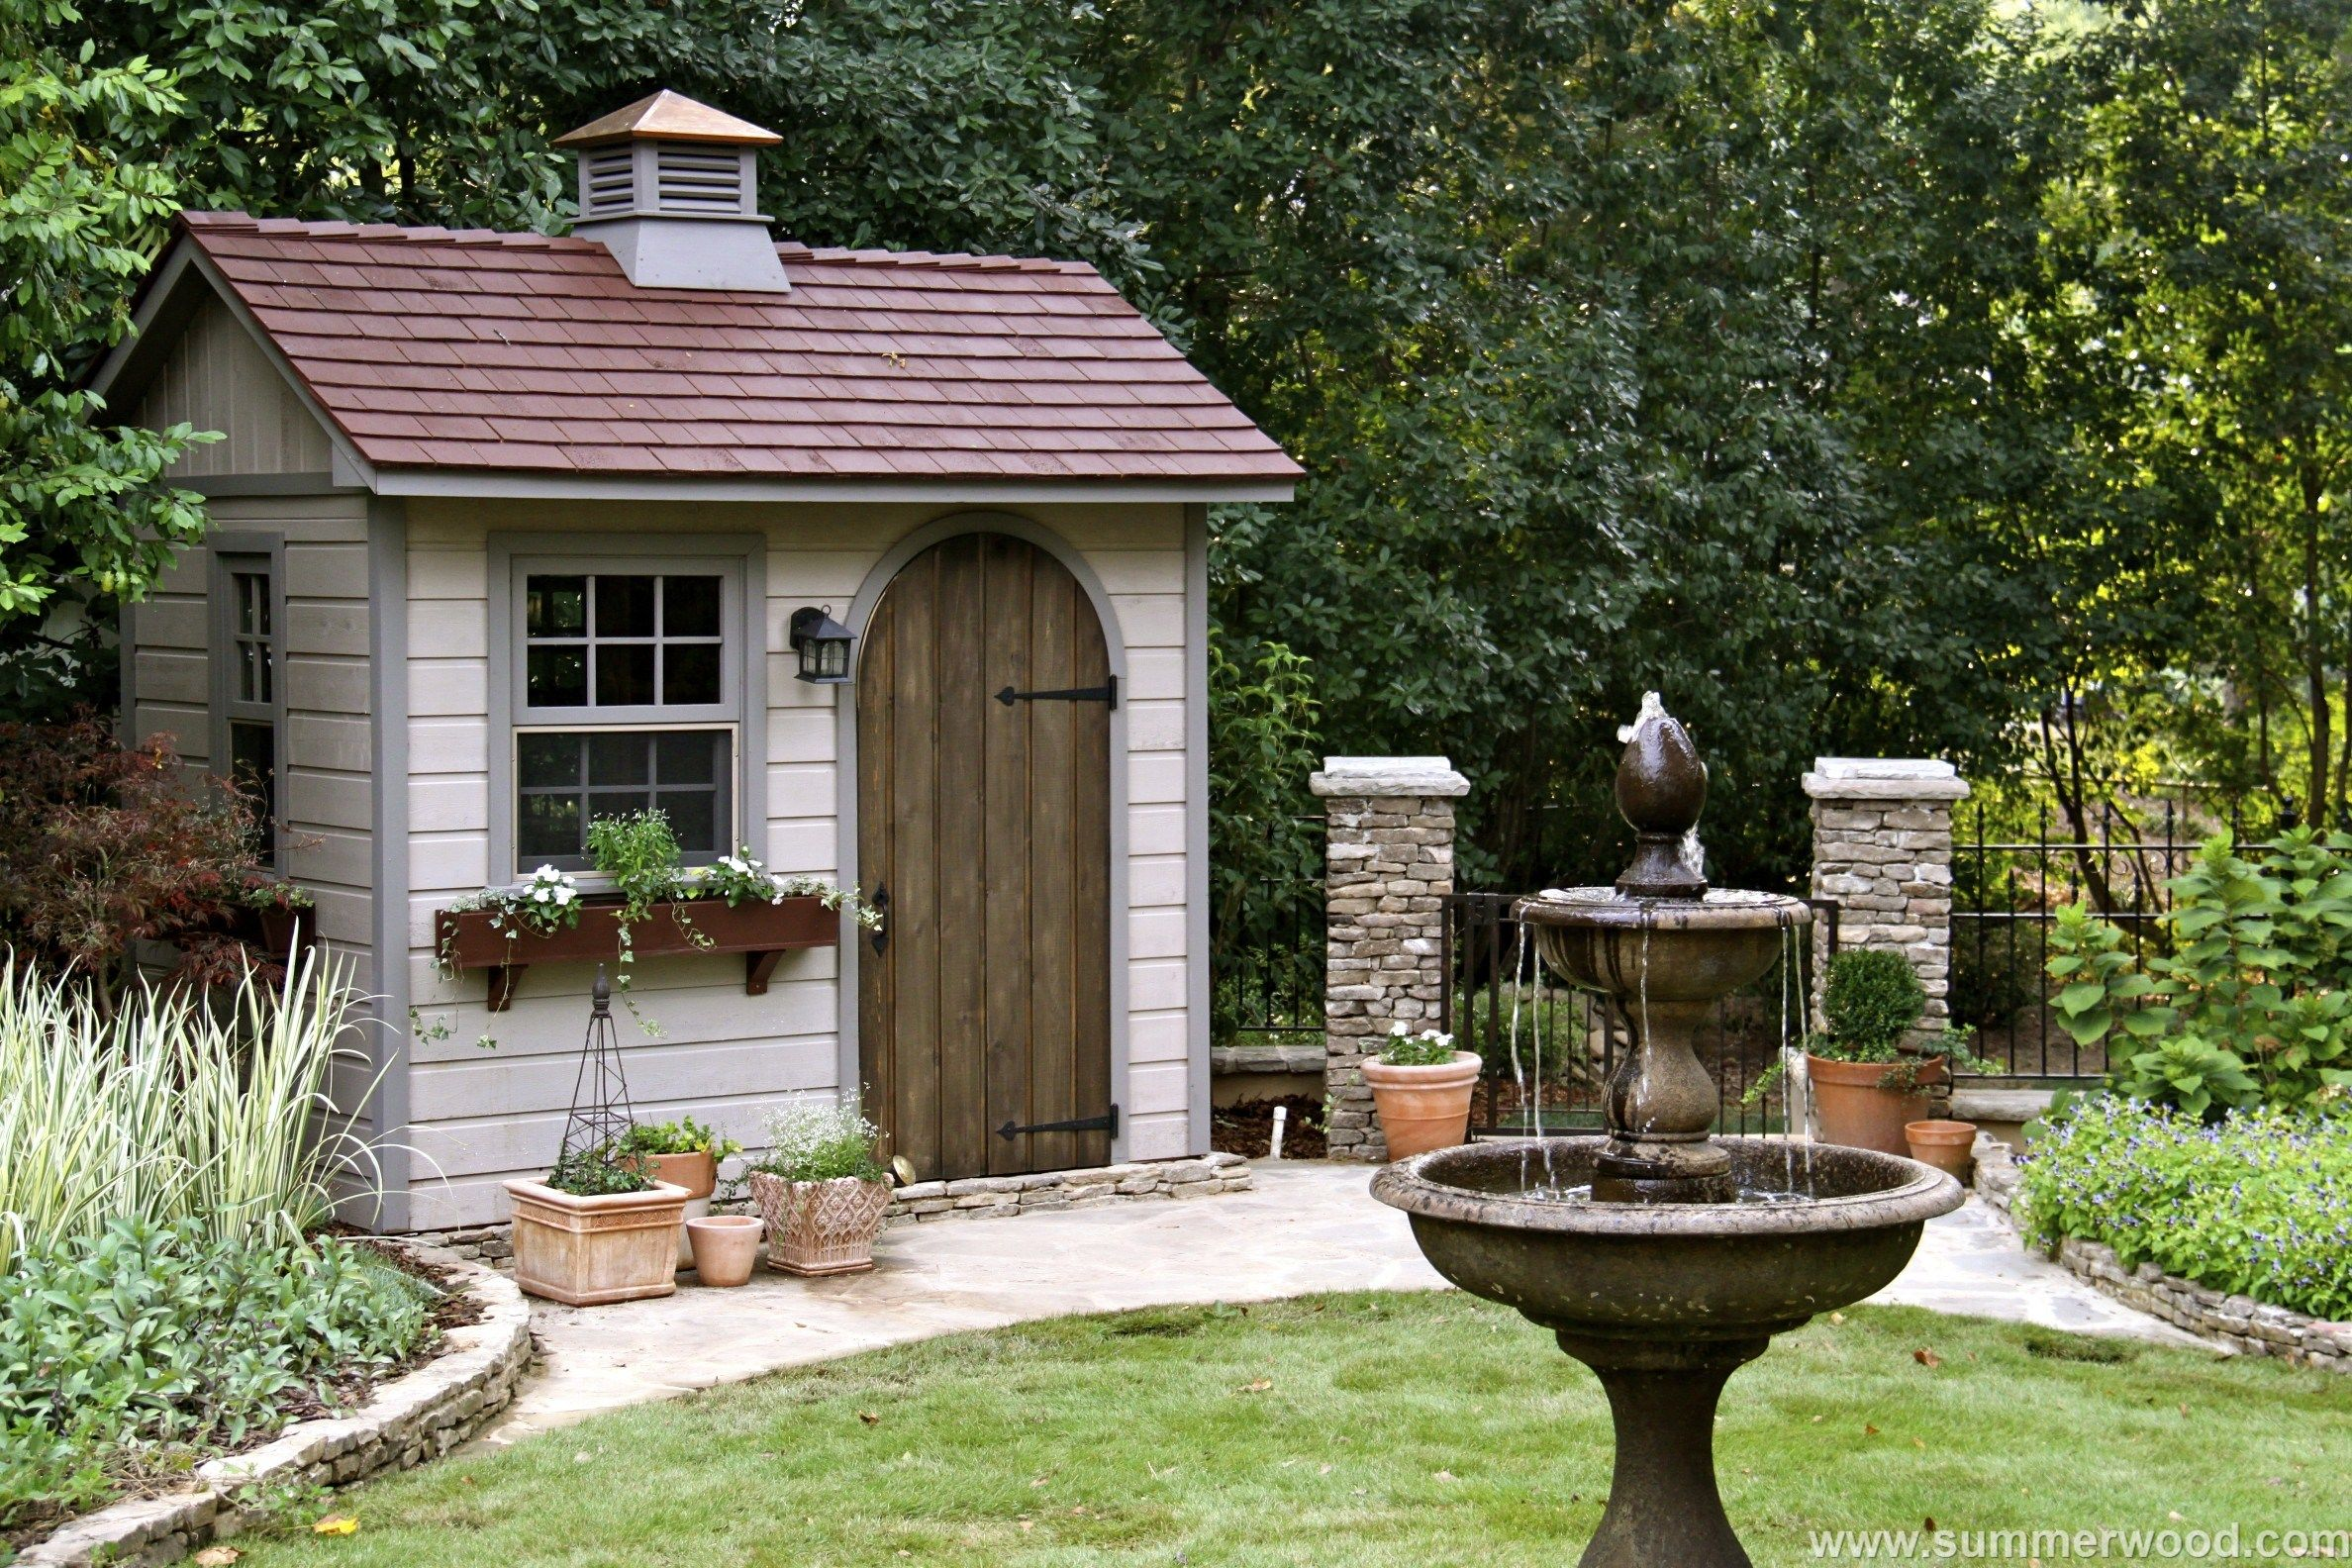 Best This Playful Palmerston Shed Will Revive Your Garden And 400 x 300